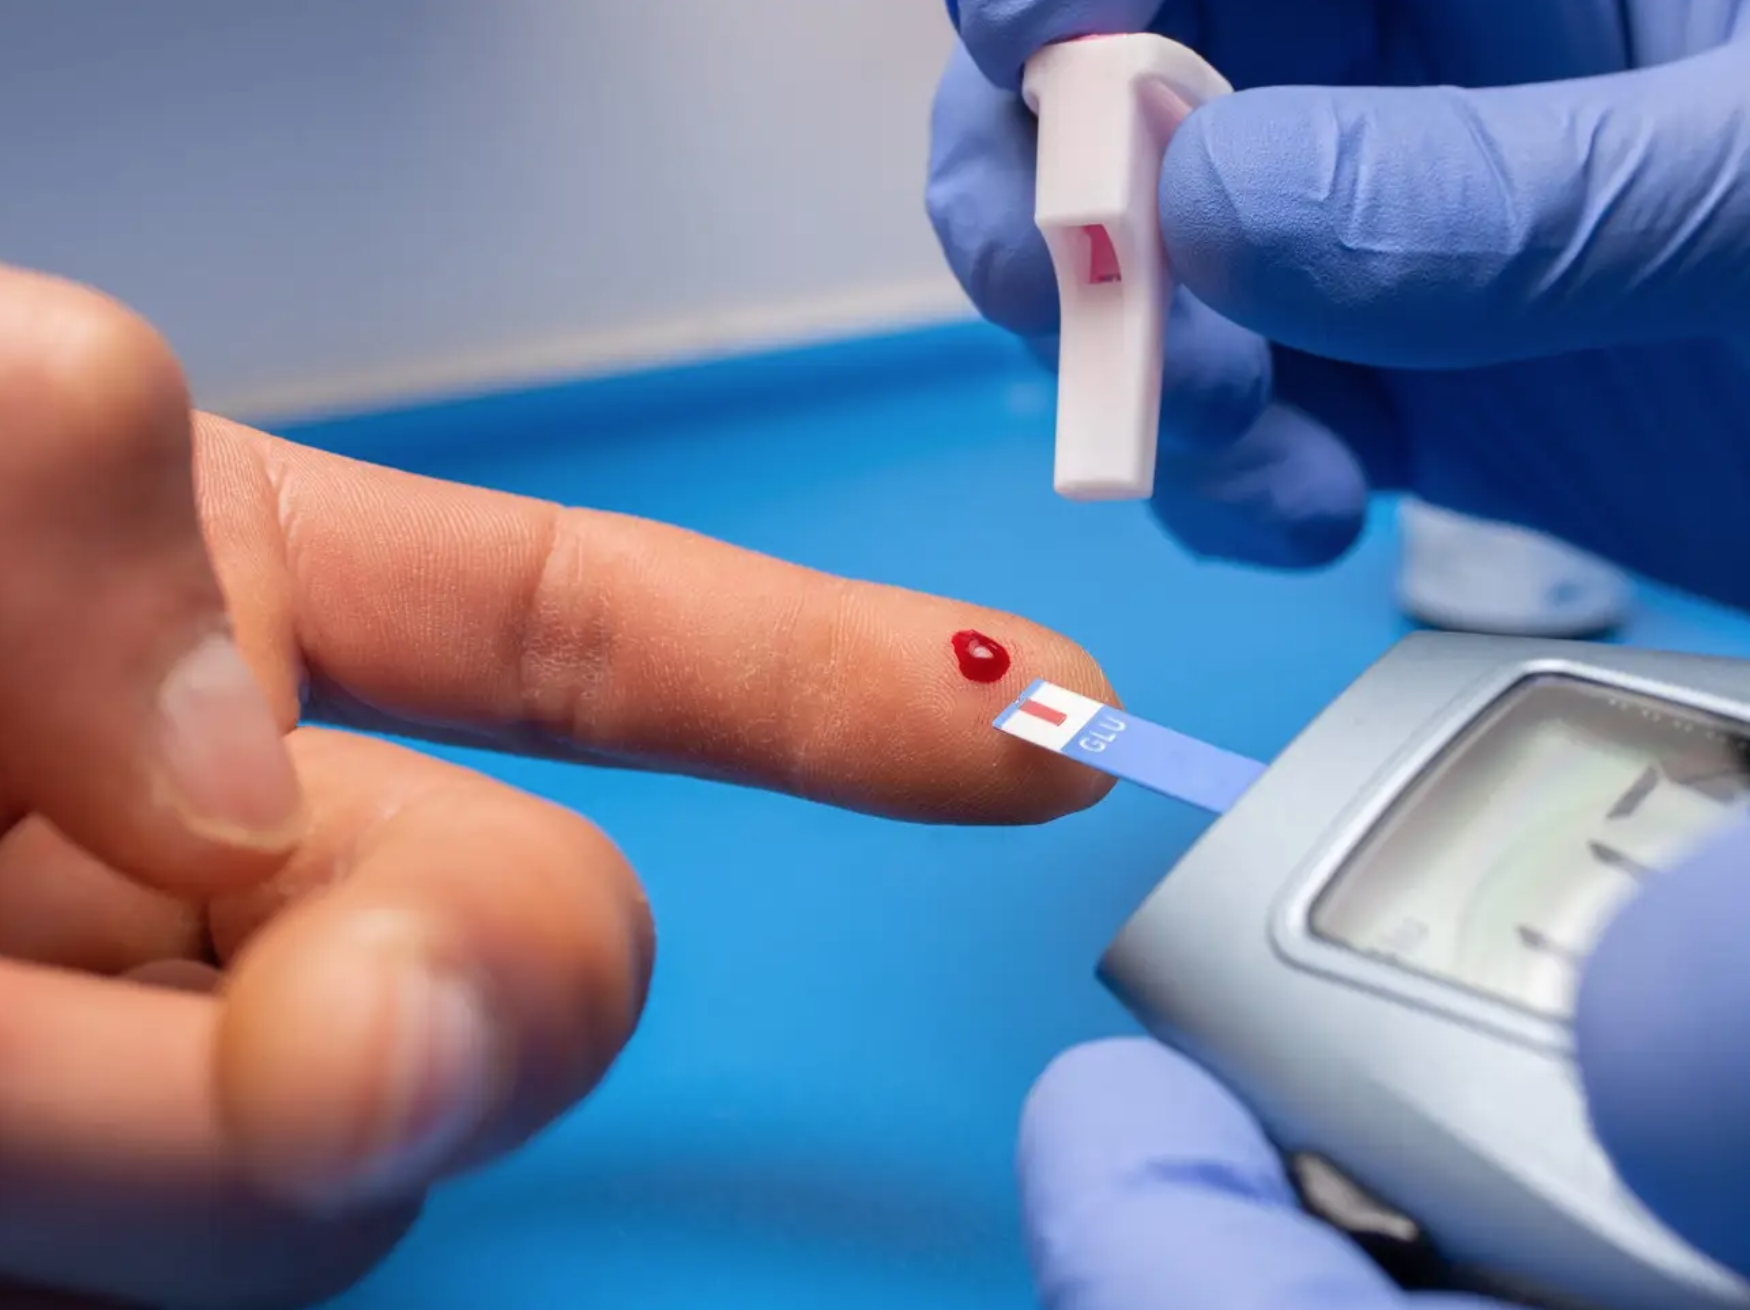 Diabetes after COVID-19 could be virus messing with Pancreas: Research - Published in Business Insider Nov 6, 2021